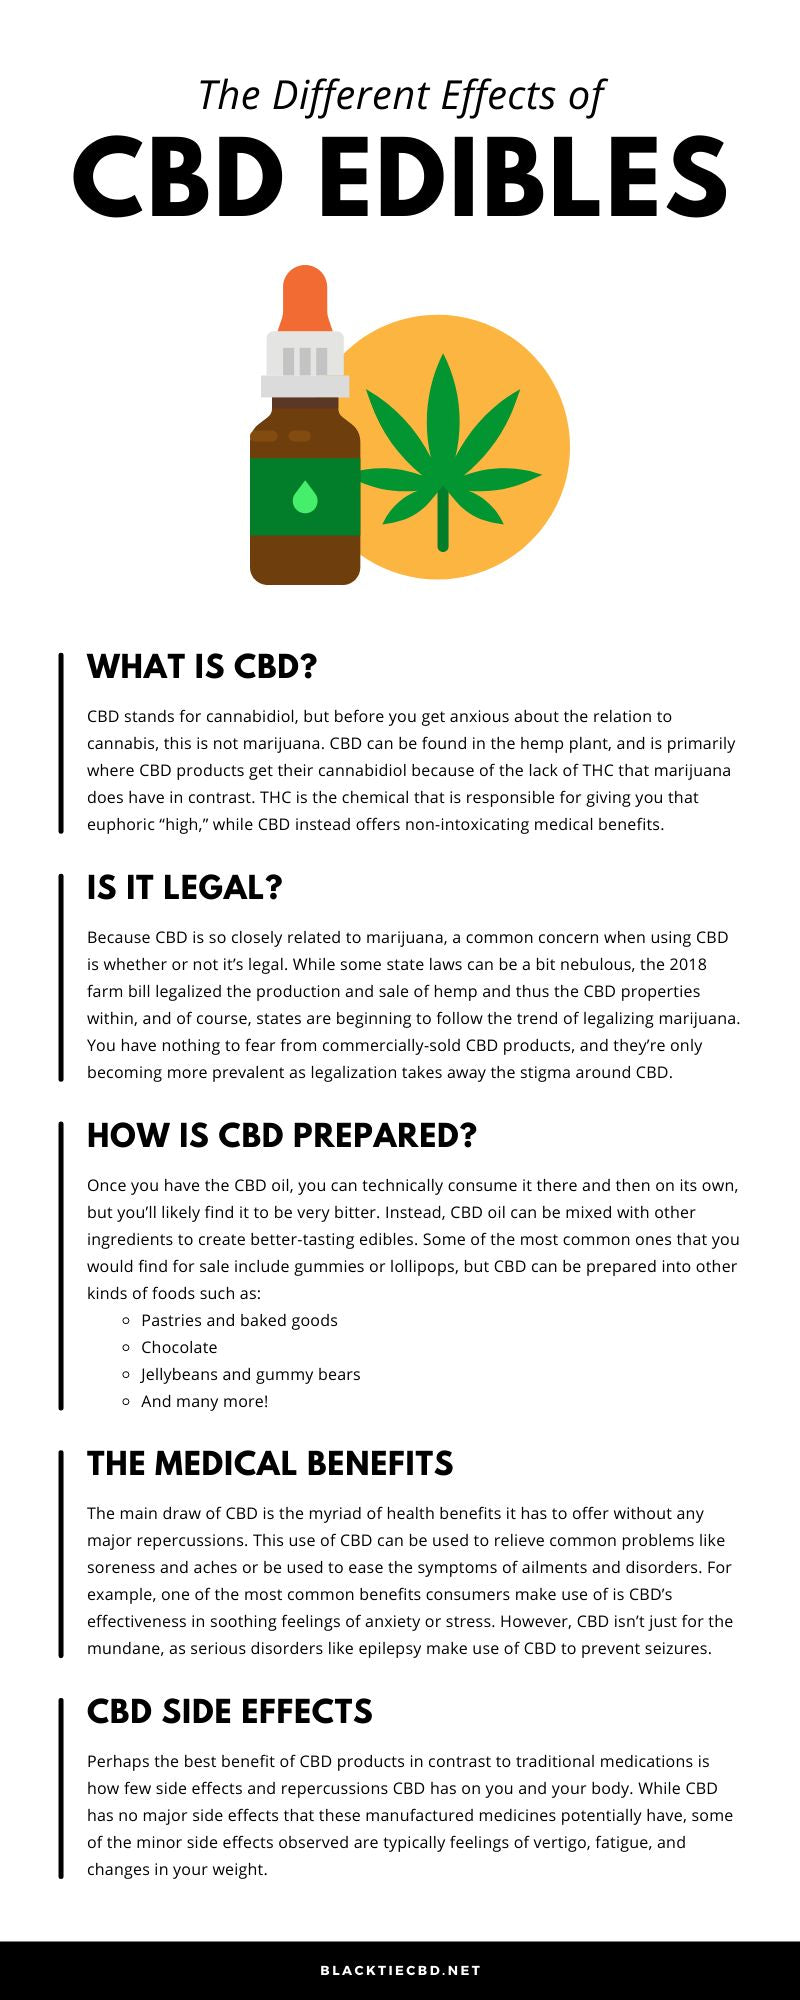 The Different Effects of CBD Edibles